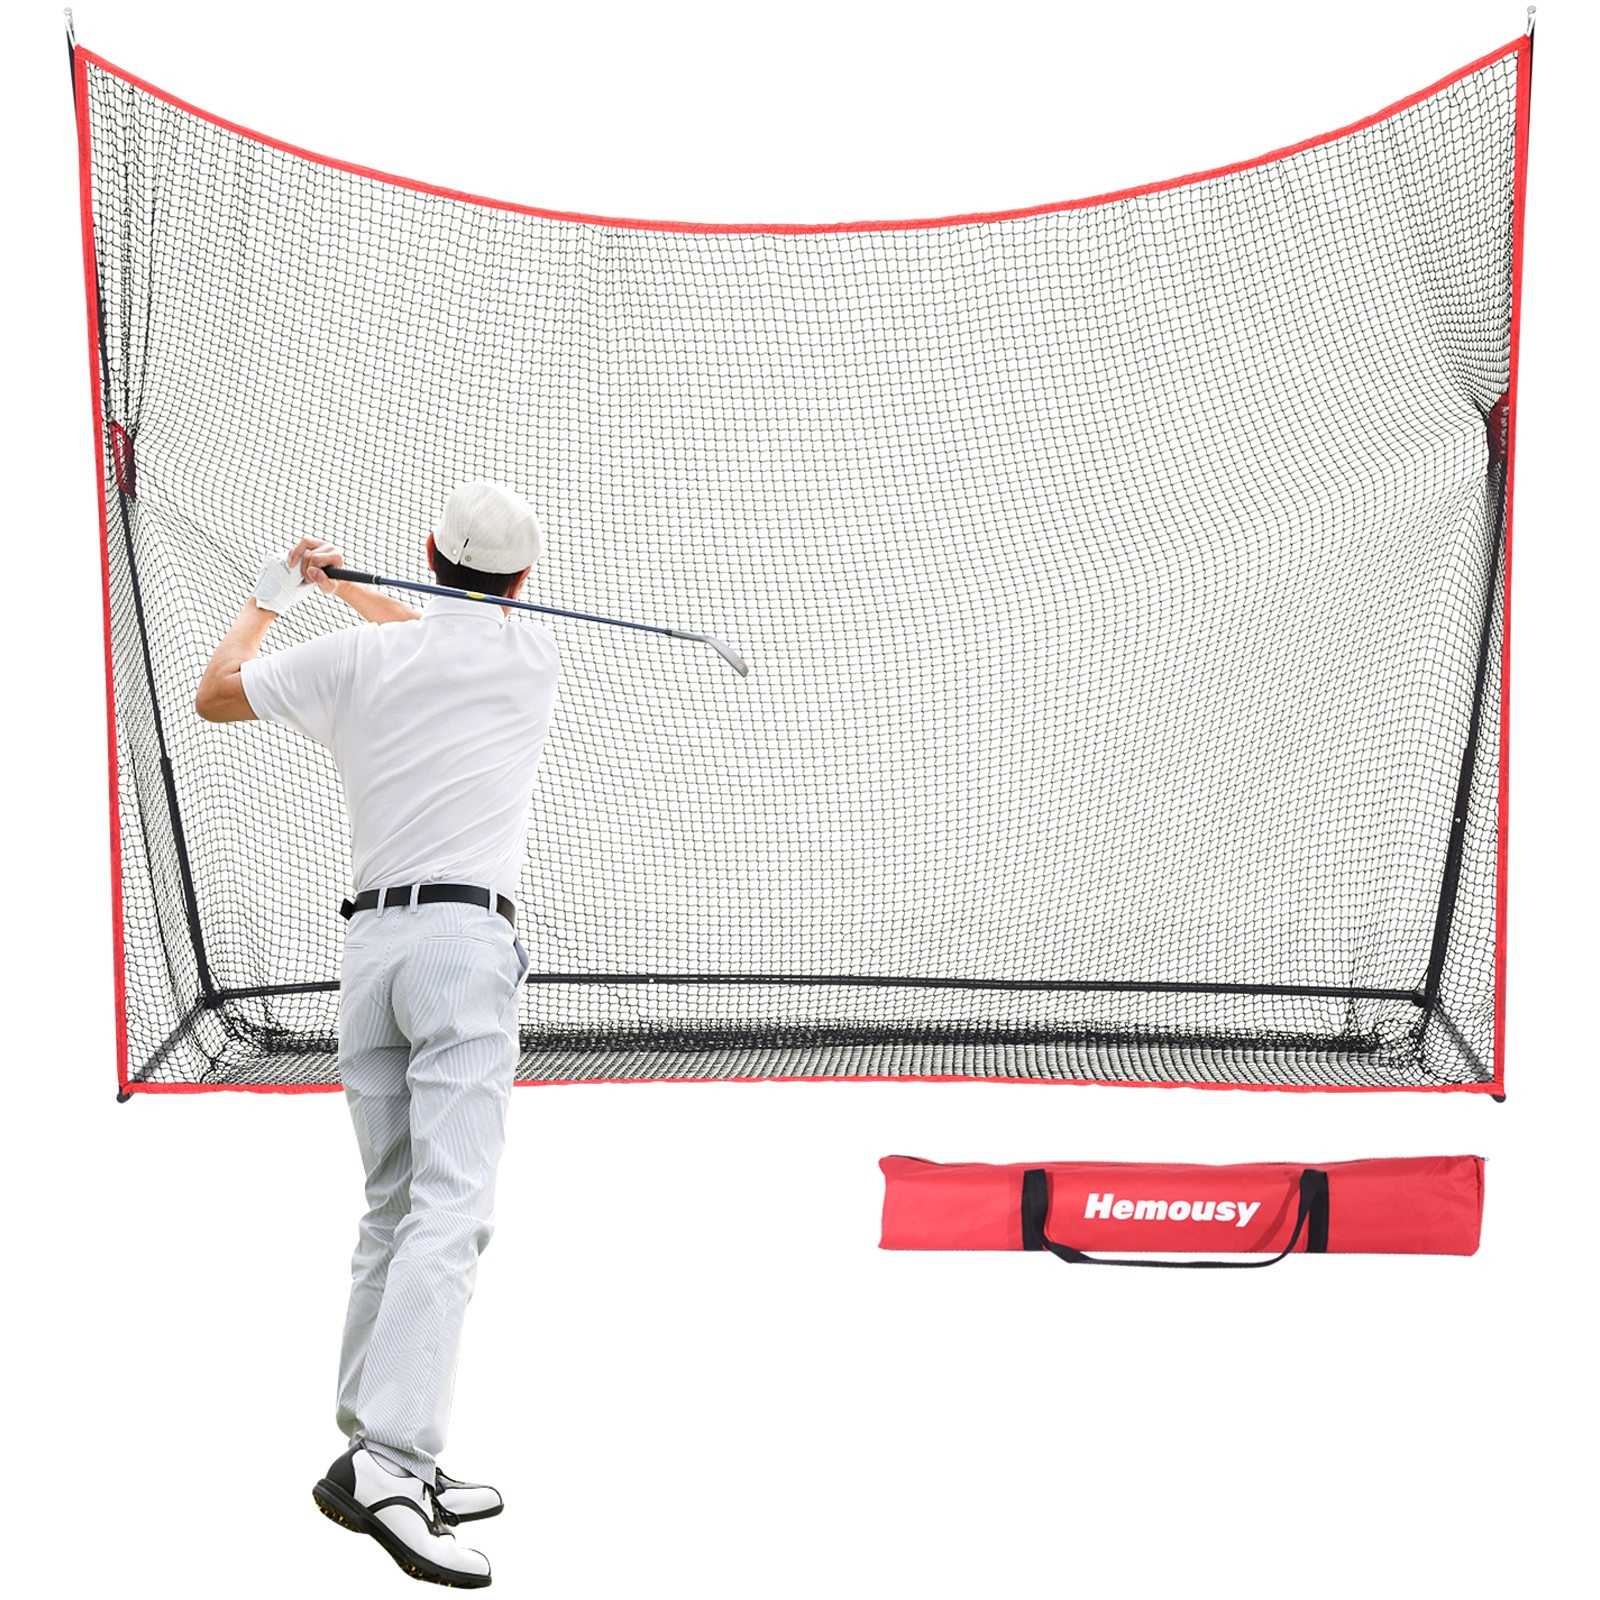 Golf Chipping Hitting Trainer Practice Net Portable Sui Intended Fold Superimposed Indoor And Outdoor Are Available